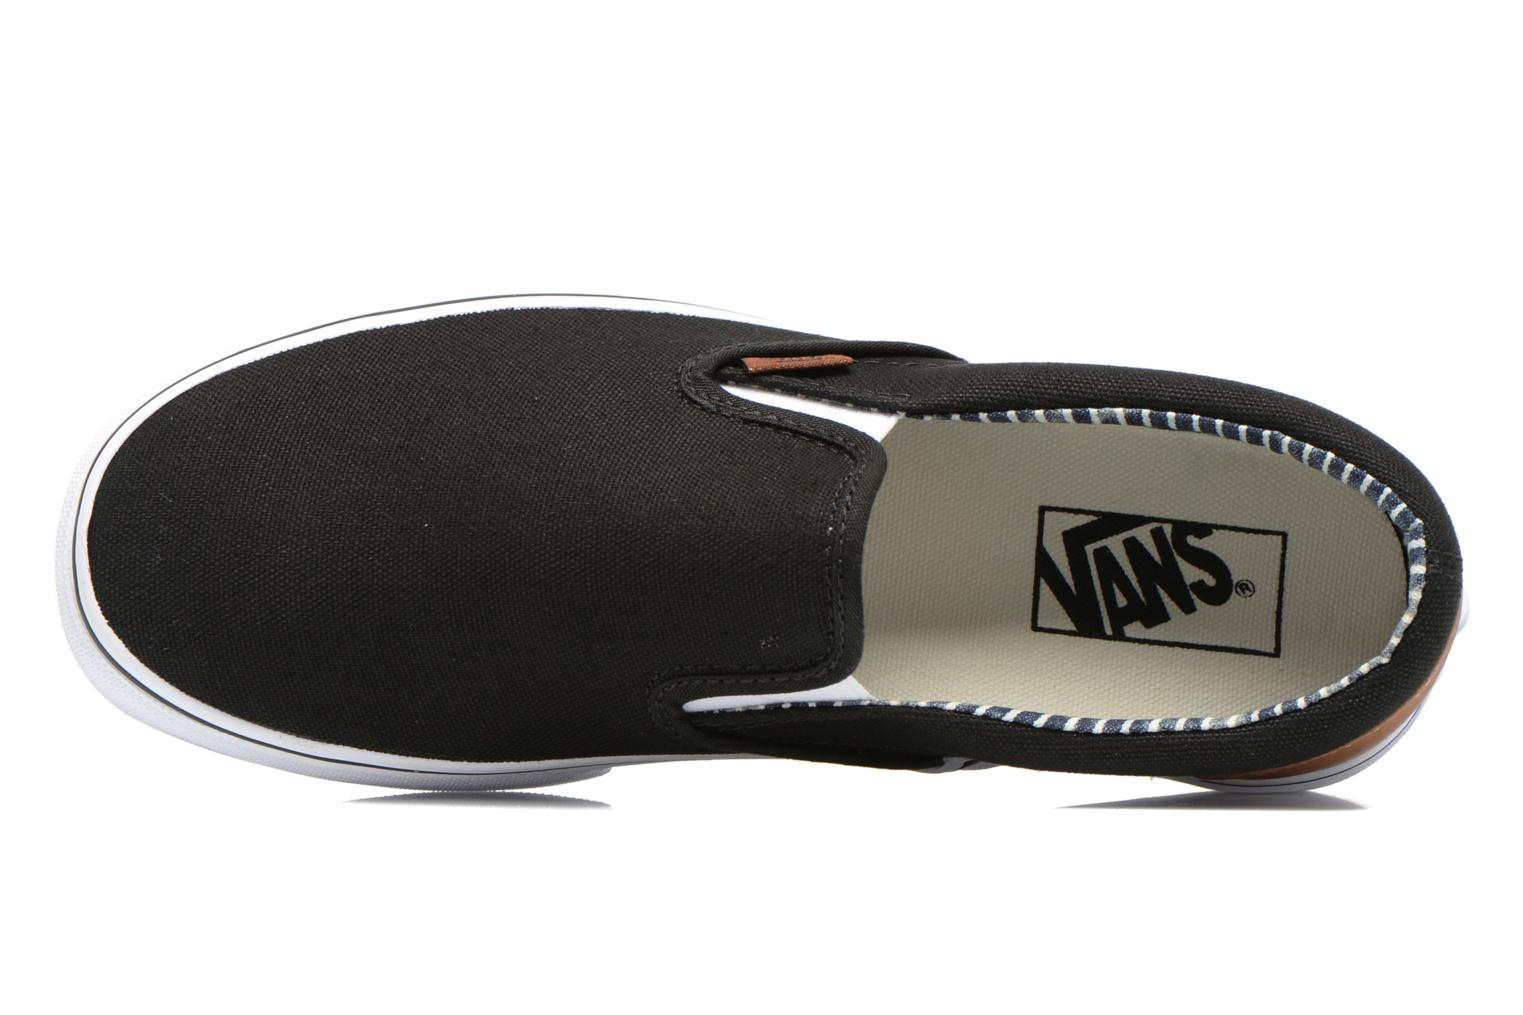 Classic Slip-on (C&L) blackstripe denim